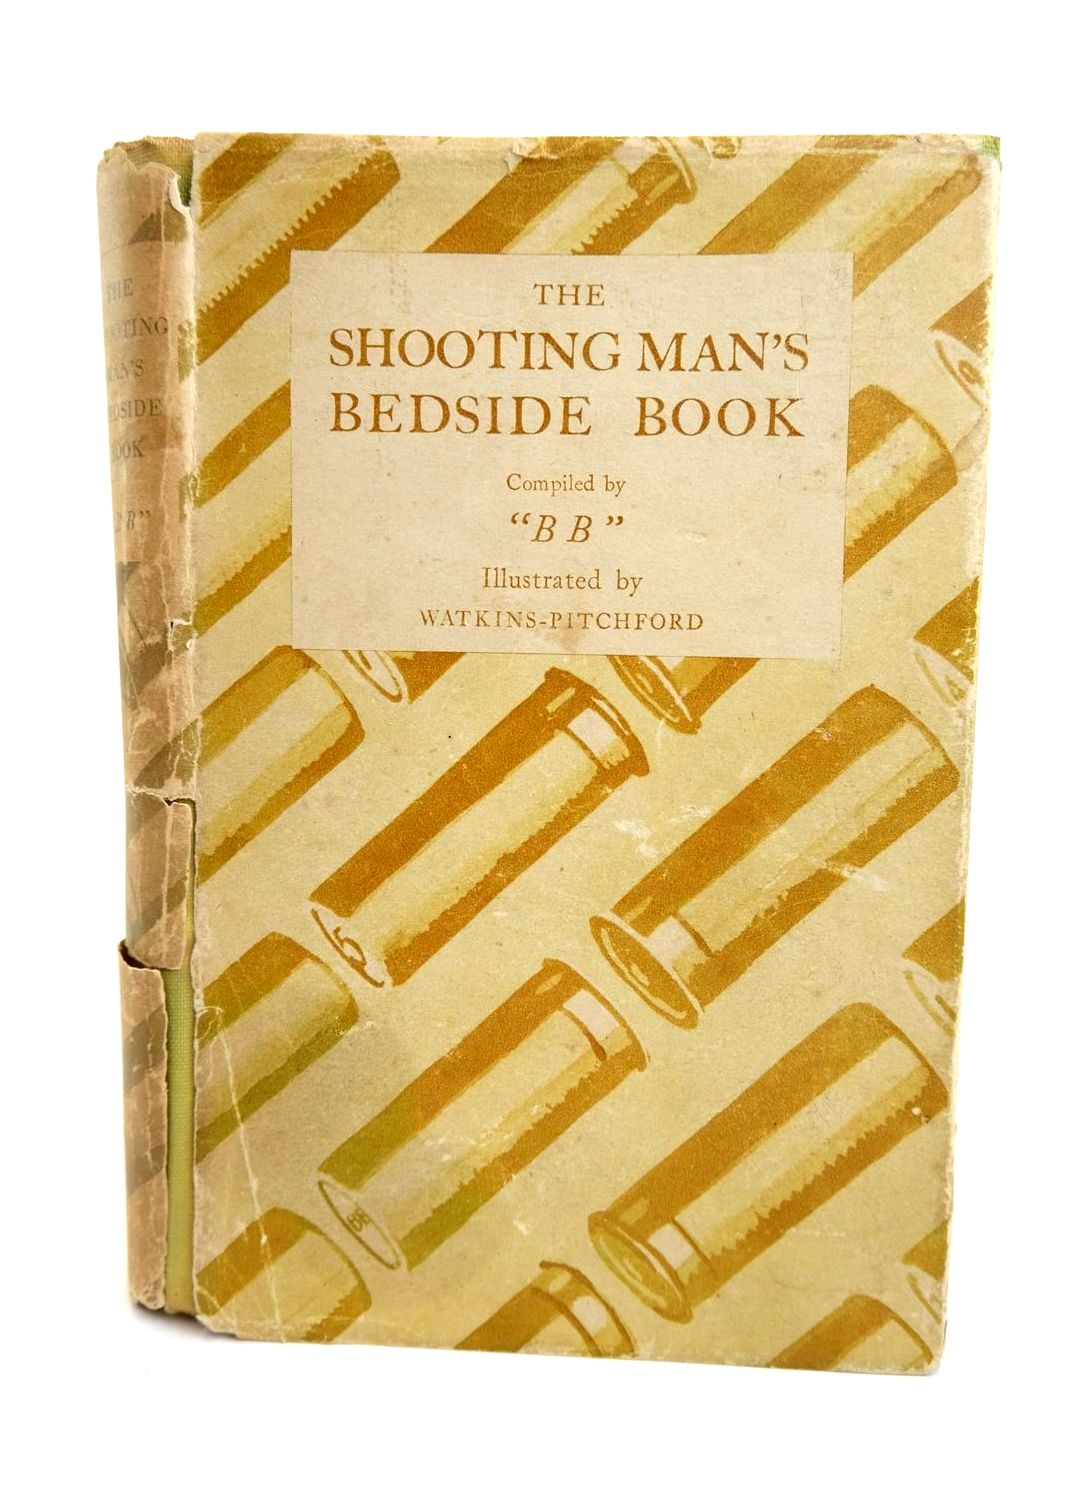 Photo of THE SHOOTING MAN'S BEDSIDE BOOK written by BB,  illustrated by BB,  published by Eyre & Spottiswoode (STOCK CODE: 1318722)  for sale by Stella & Rose's Books